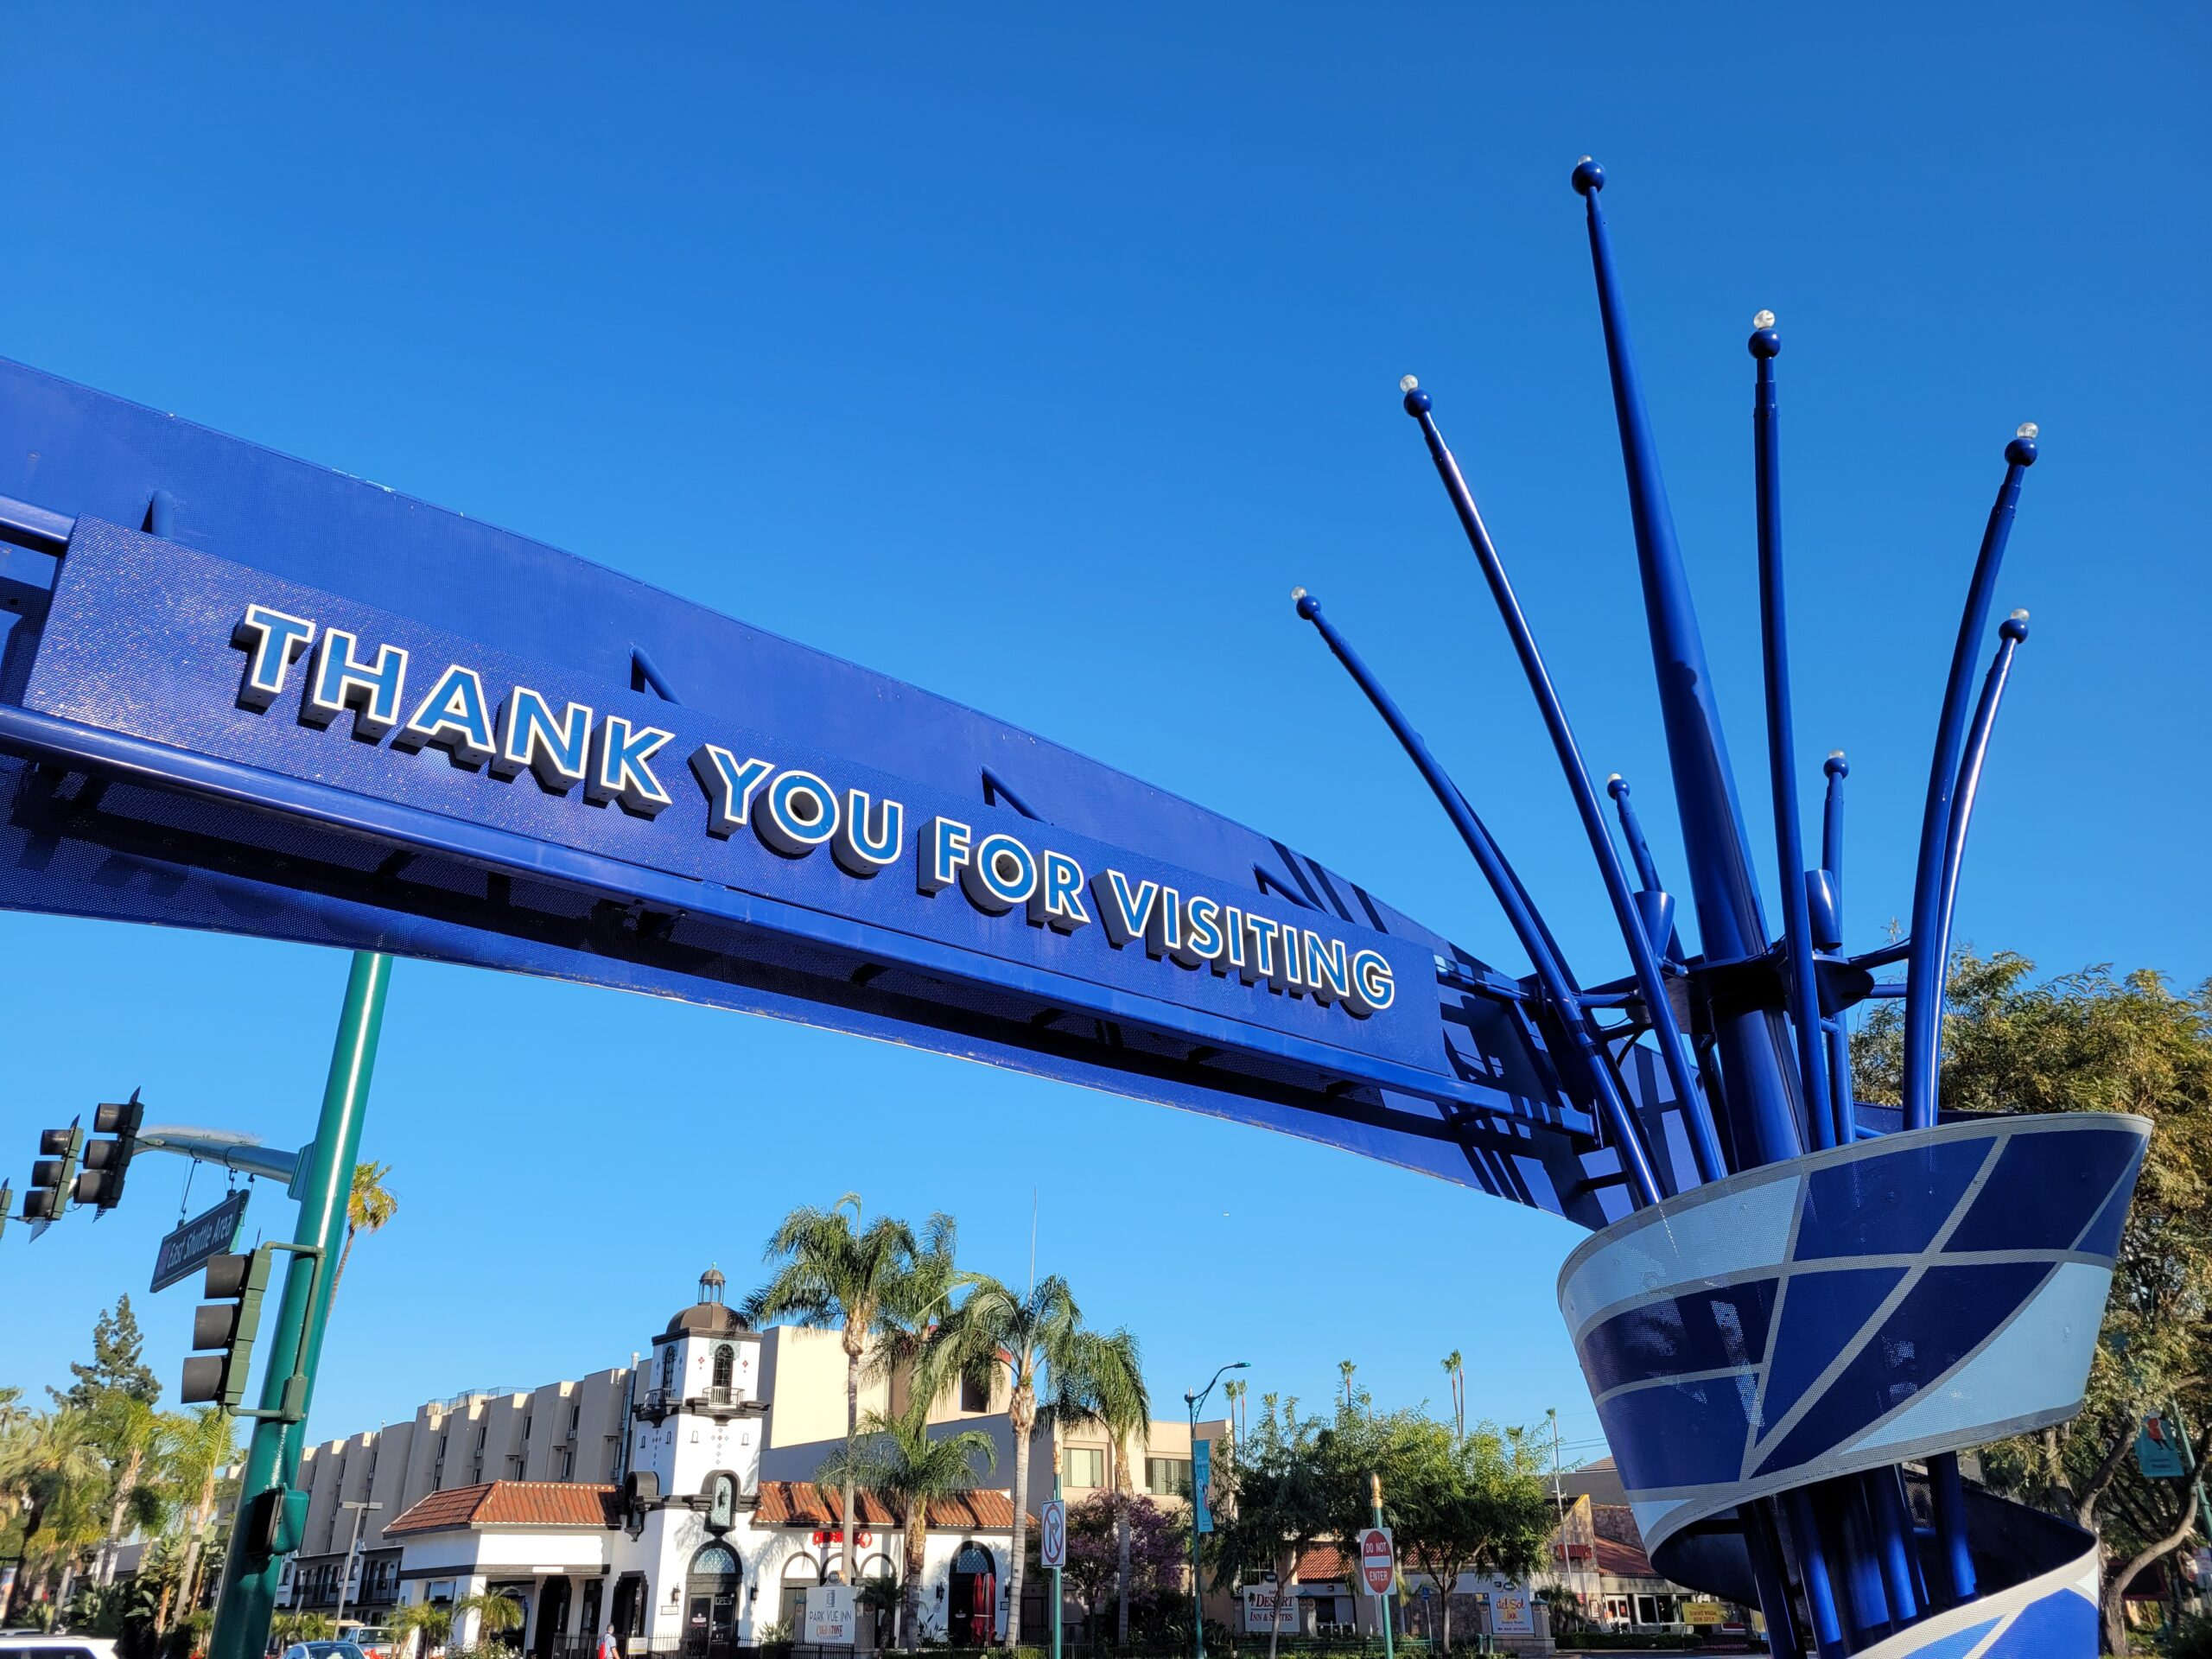 Thank You For Visiting Sign - Disneyland Entrance